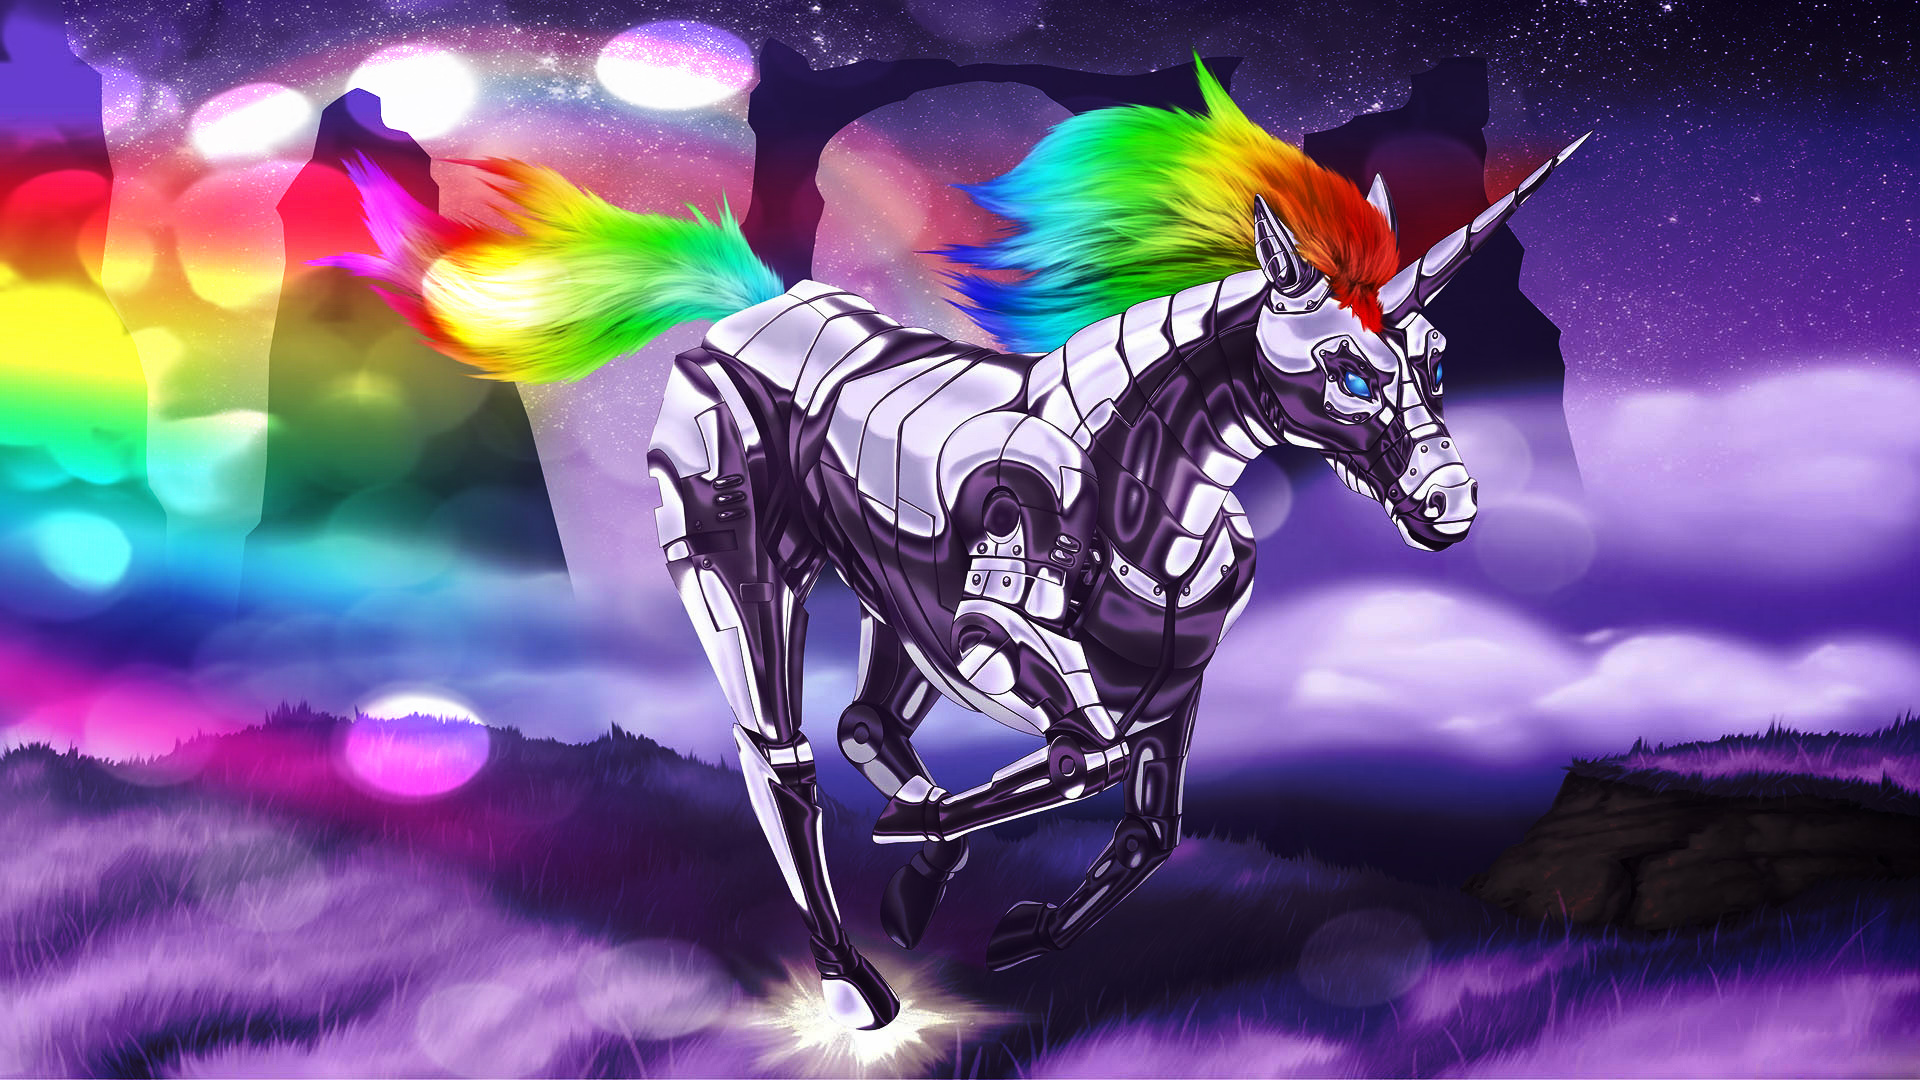 Unicorn background 14